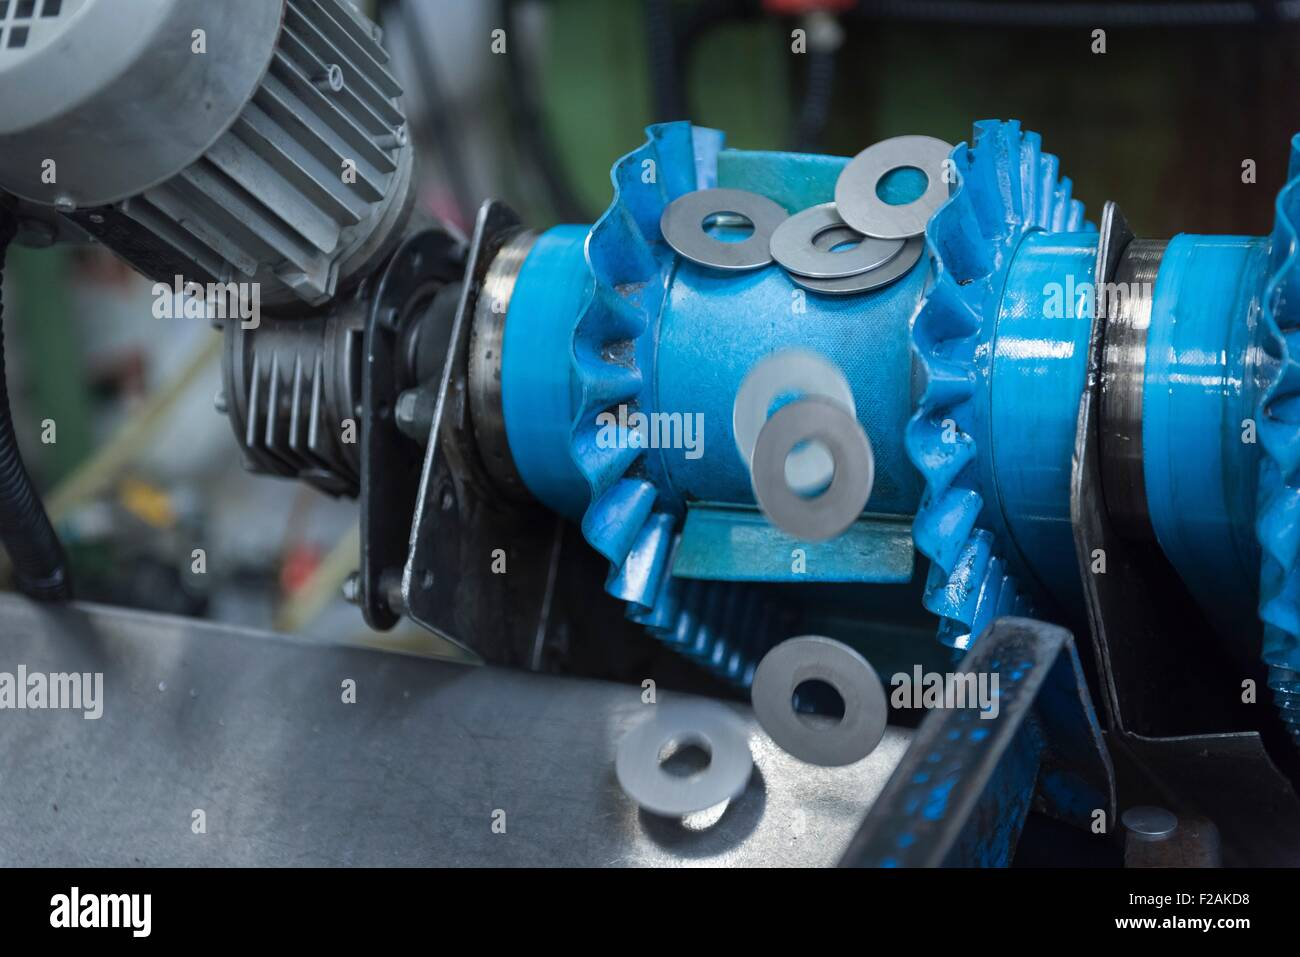 Cut metal washers on machine in engineering factory, close up - Stock Image